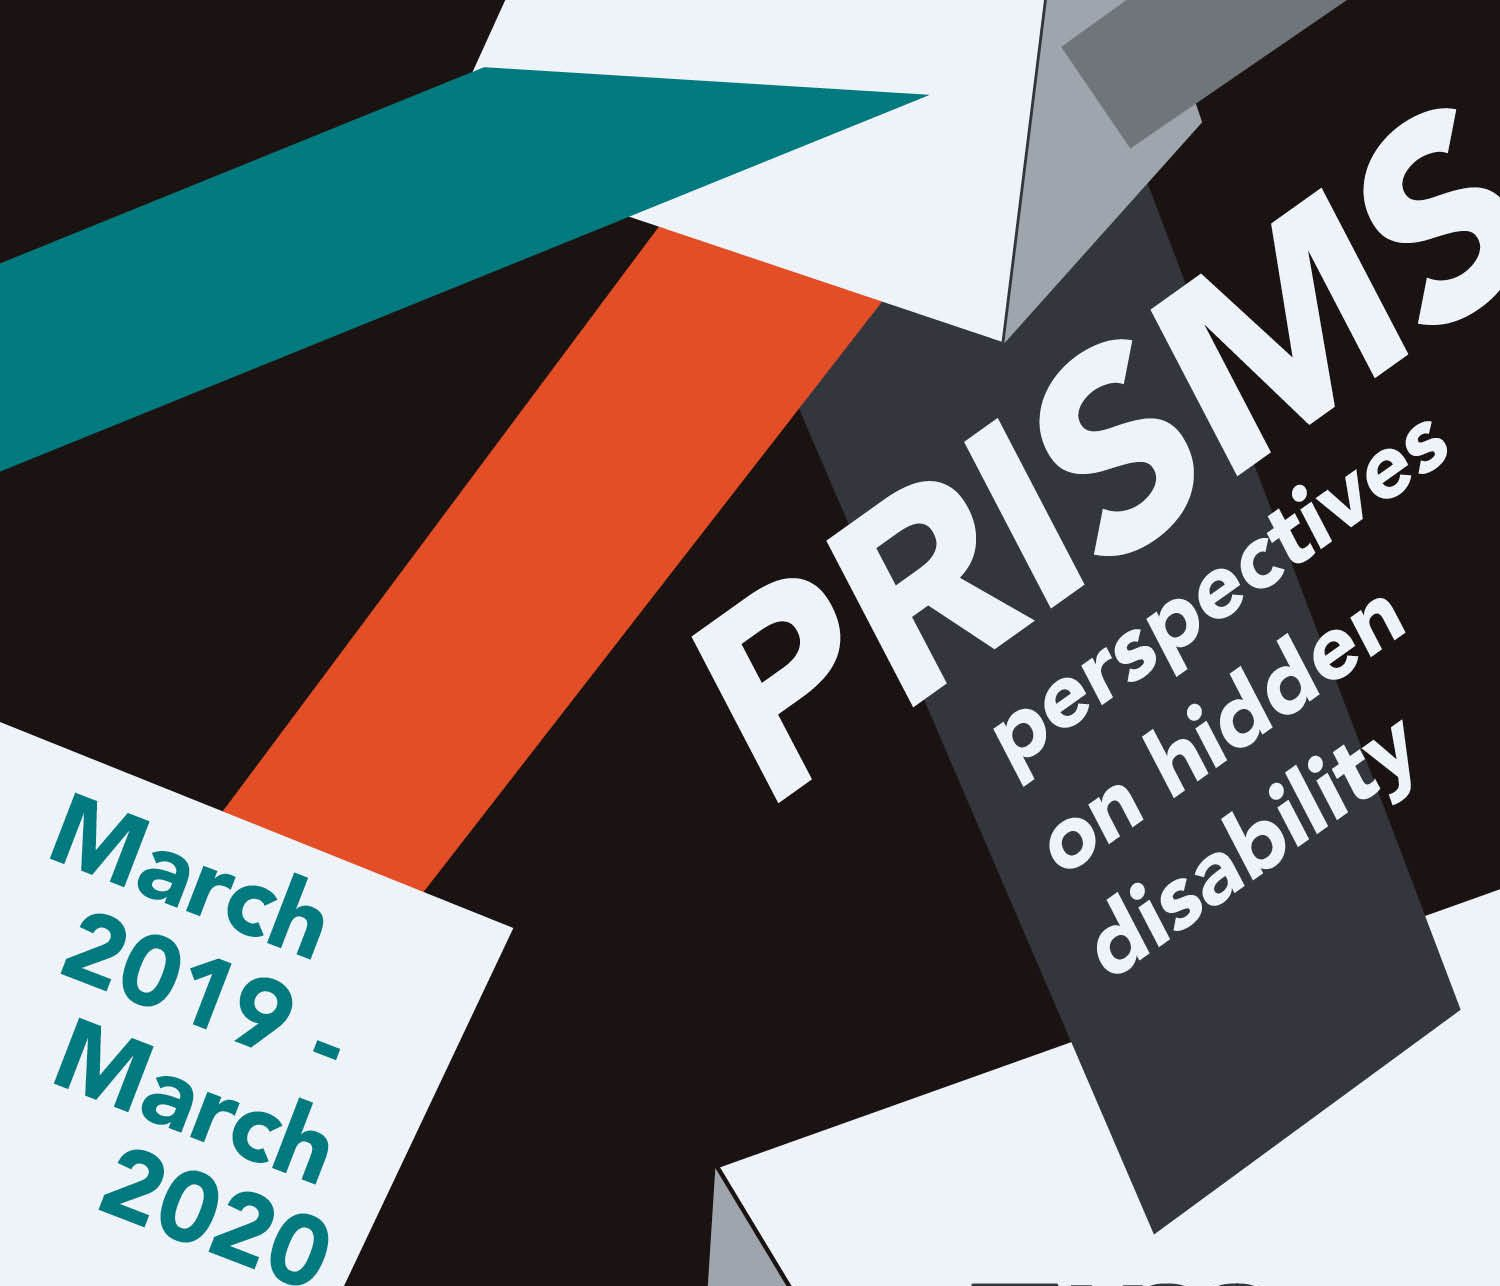 Prisms series logo - reads Prisms, perspectives on hidden disability, March 2019 - March 2020